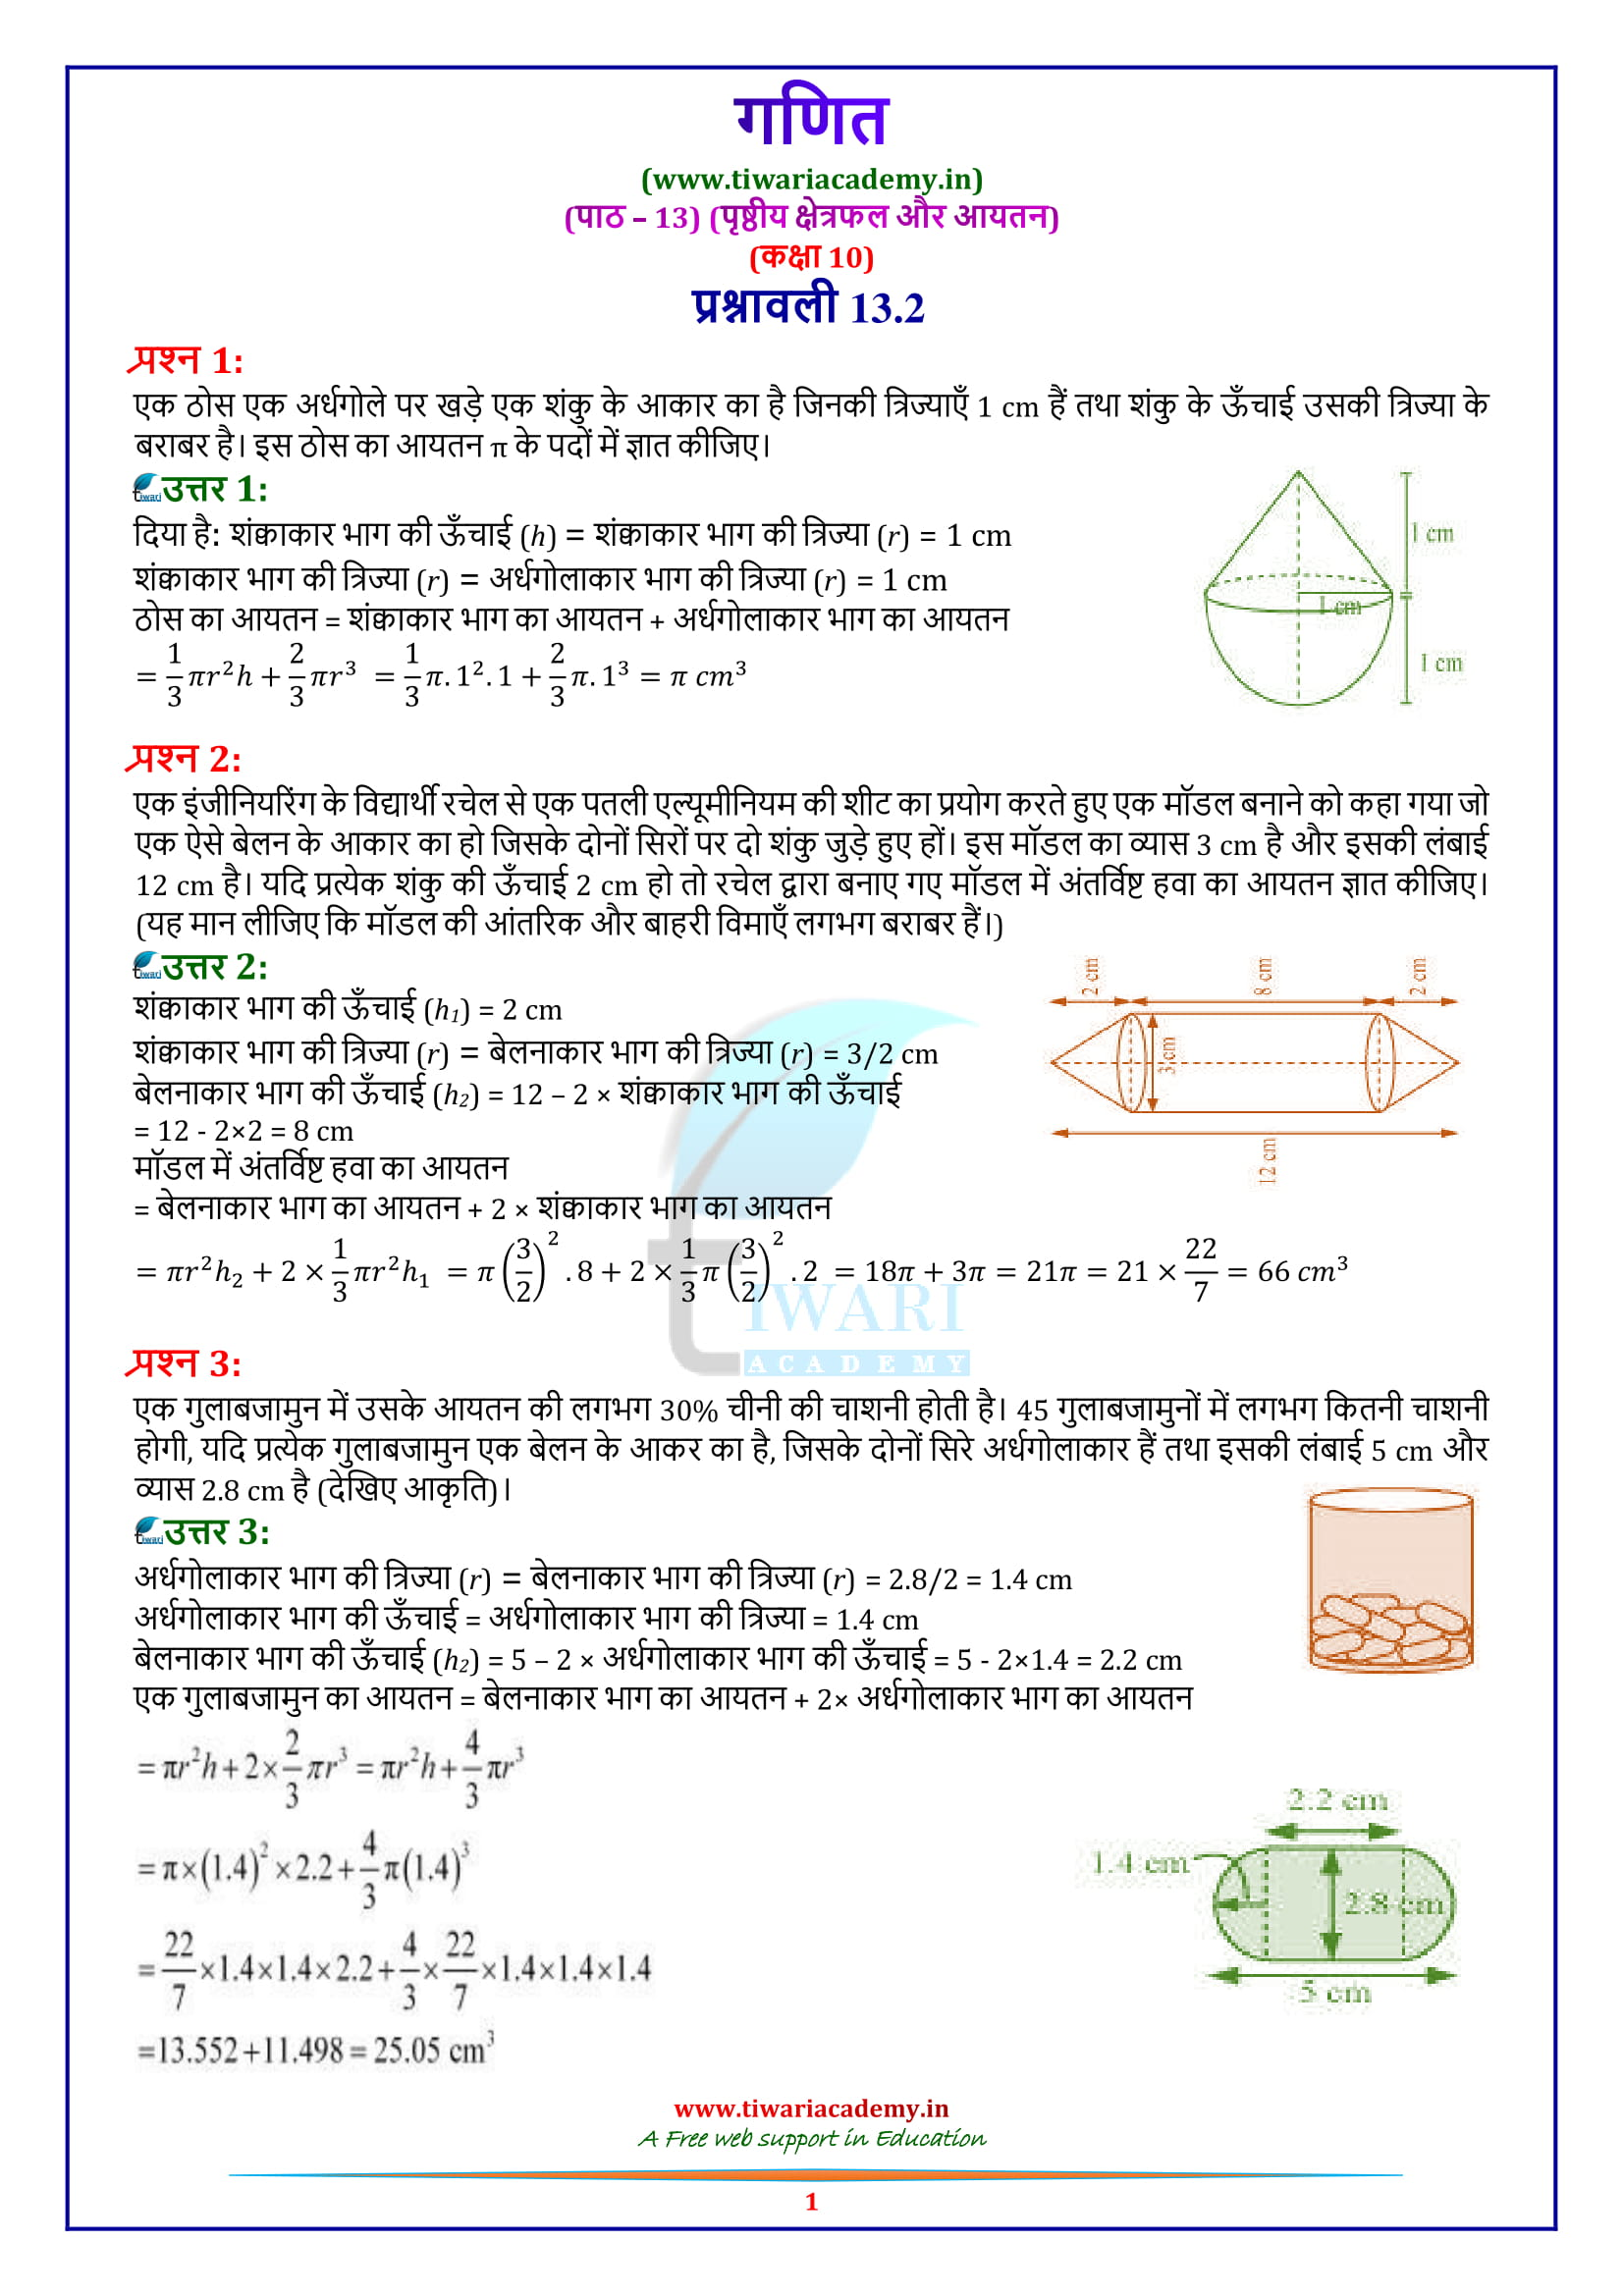 Class 10 Maths Exercise 13.2 solutions in Hindi medium